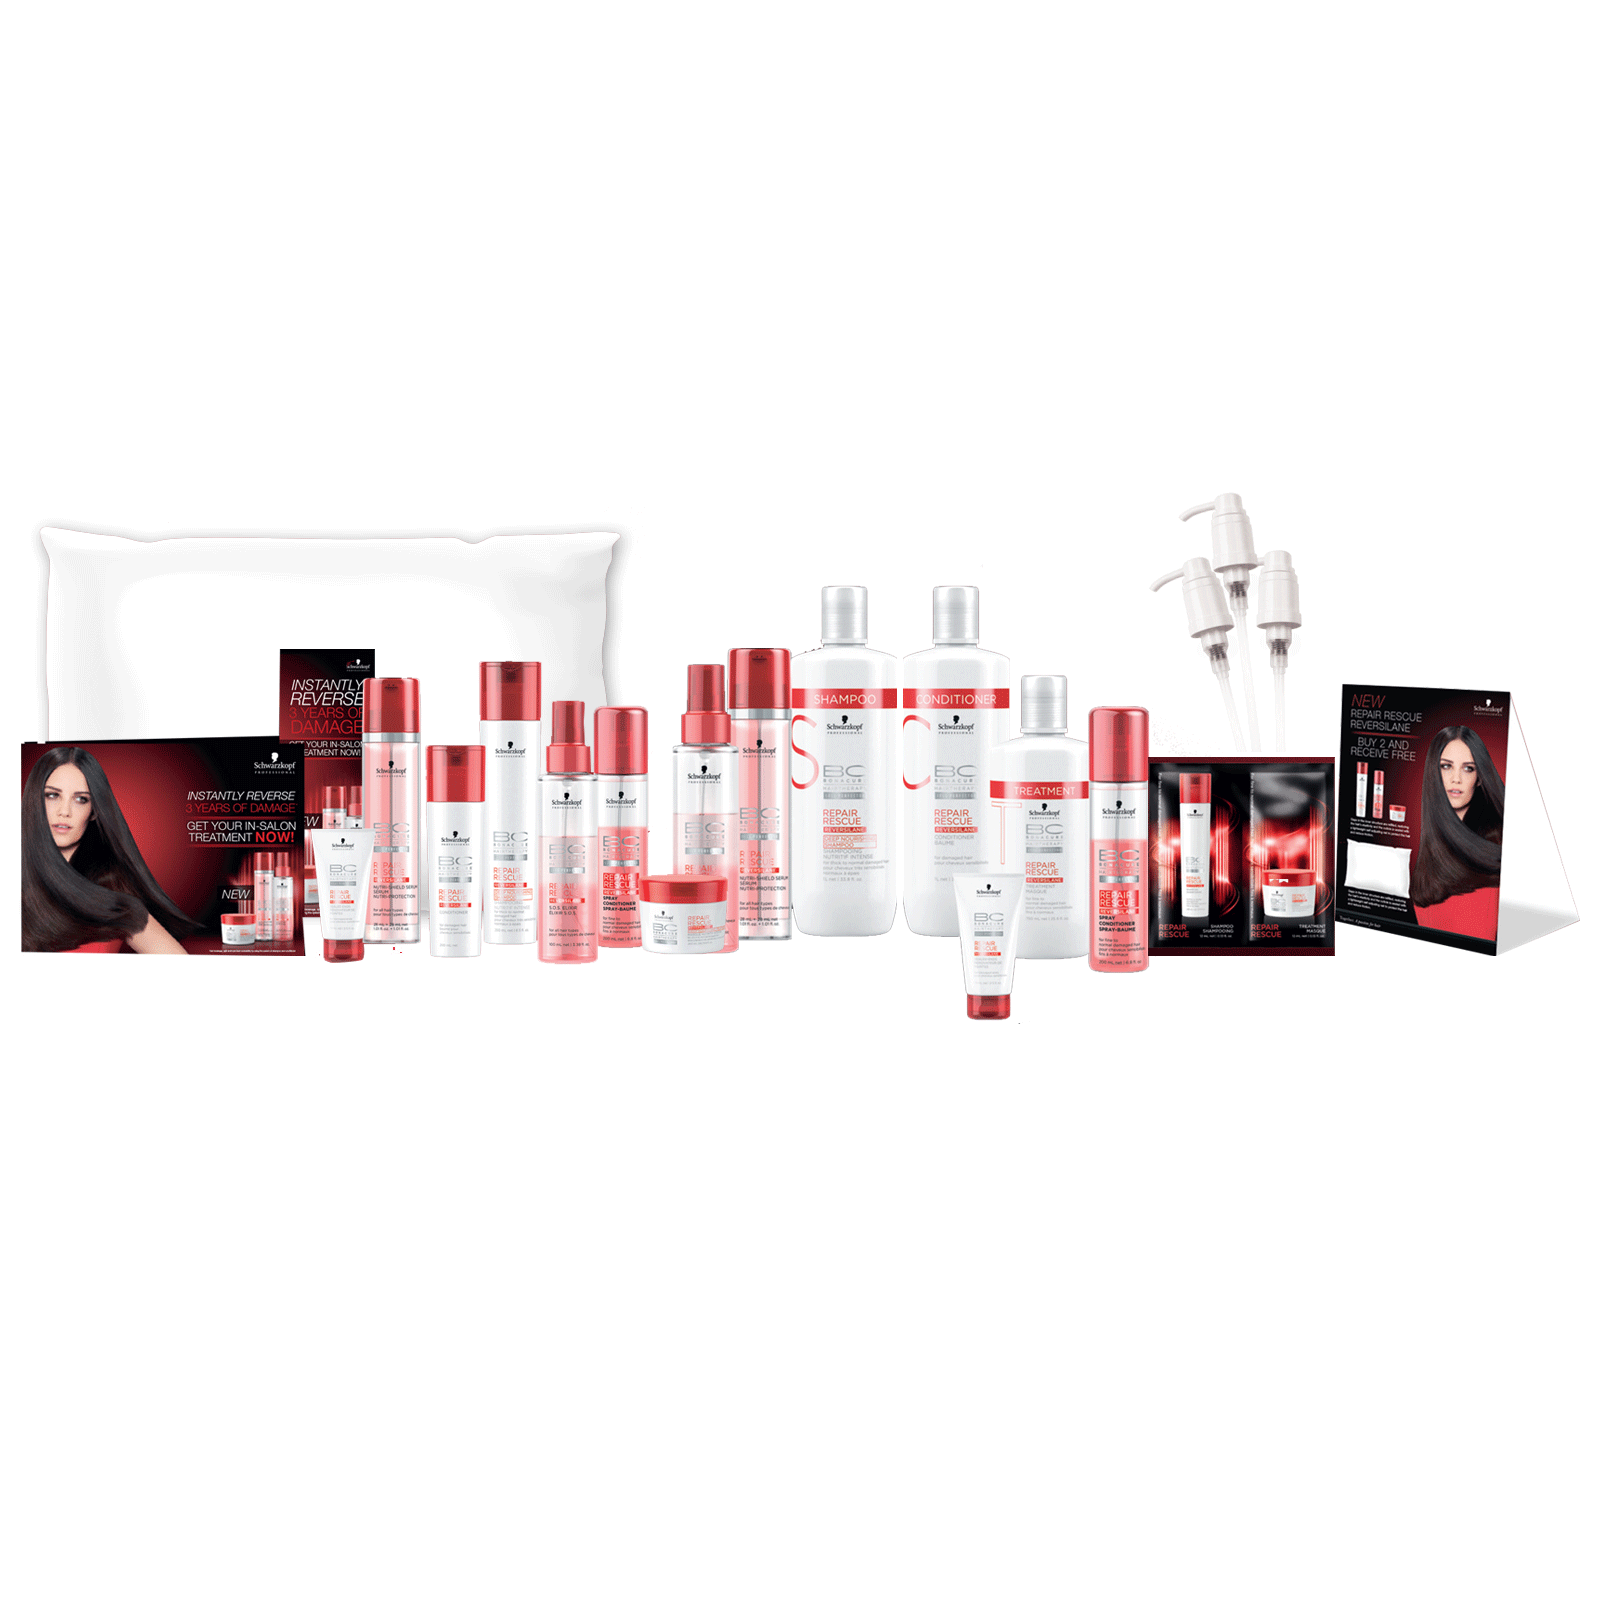 Repair rescue salon intro schwarzkopf cosmoprof for Beauty salon introduction